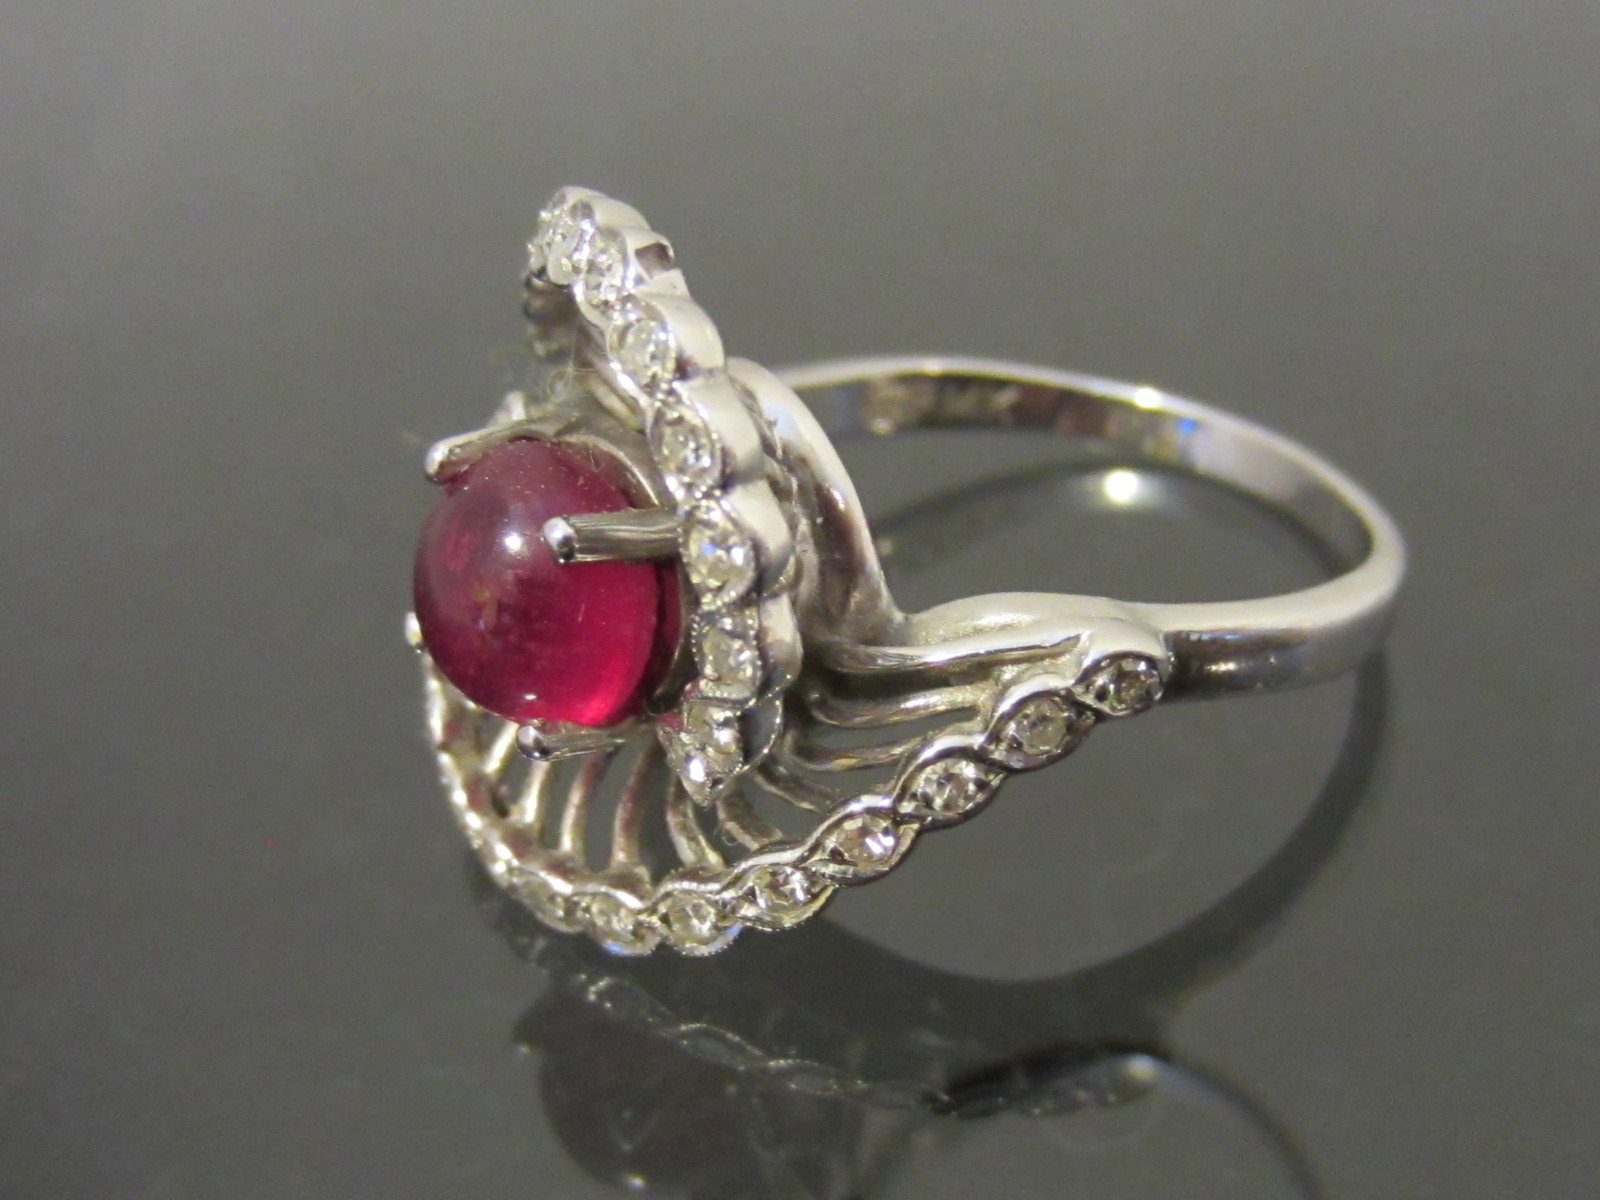 Vintage 1940s 14K Solid White Gold 1.73ct Genuine Ruby Cabochon & Diamond Swirly